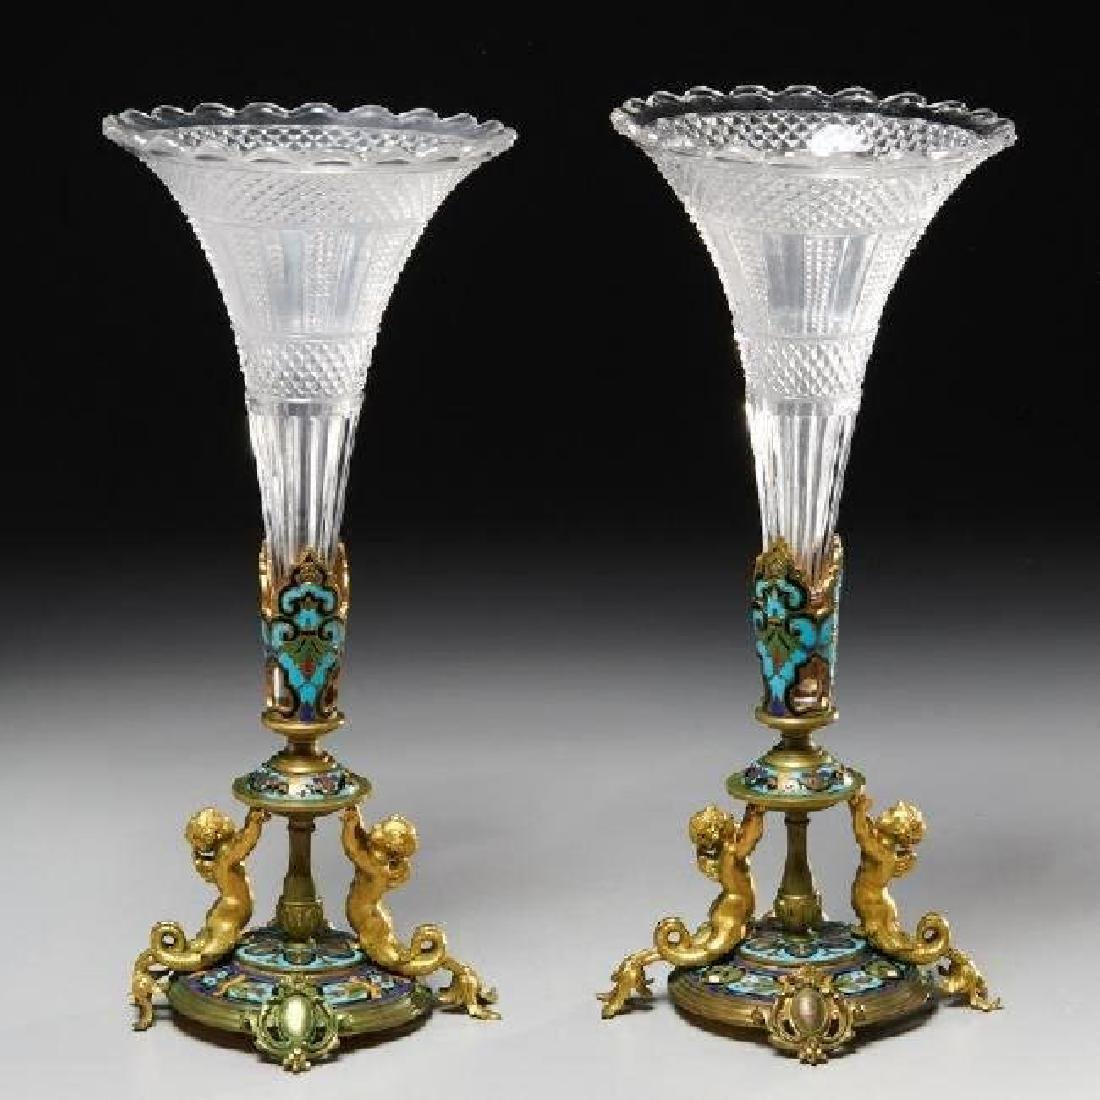 19TH C. CHAMPLEVE ENAMEL AND BACCARAT STYLE GLASS VASES